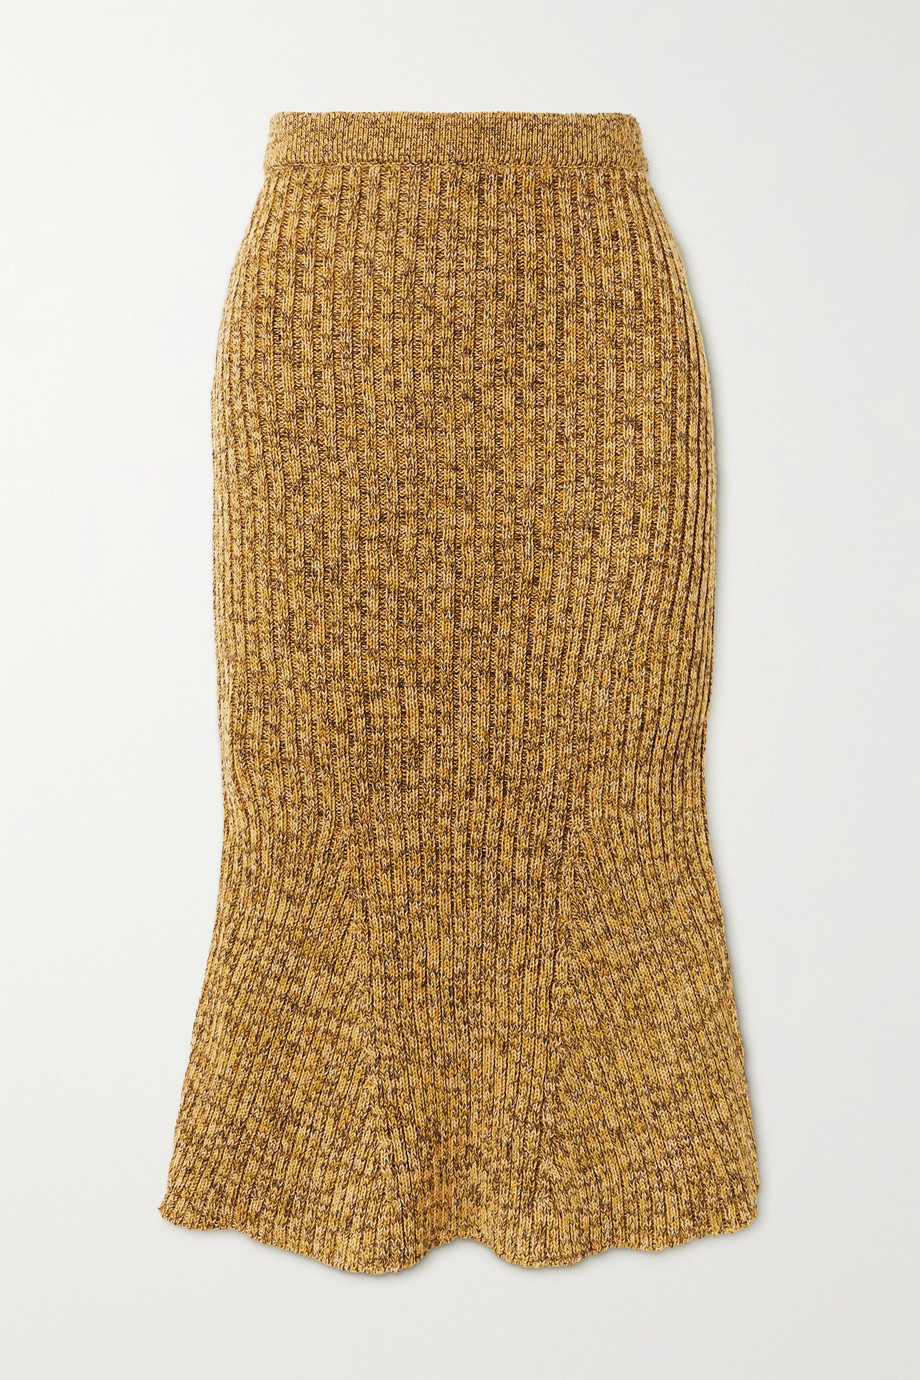 Christopher Kane Ribbed wool skirt